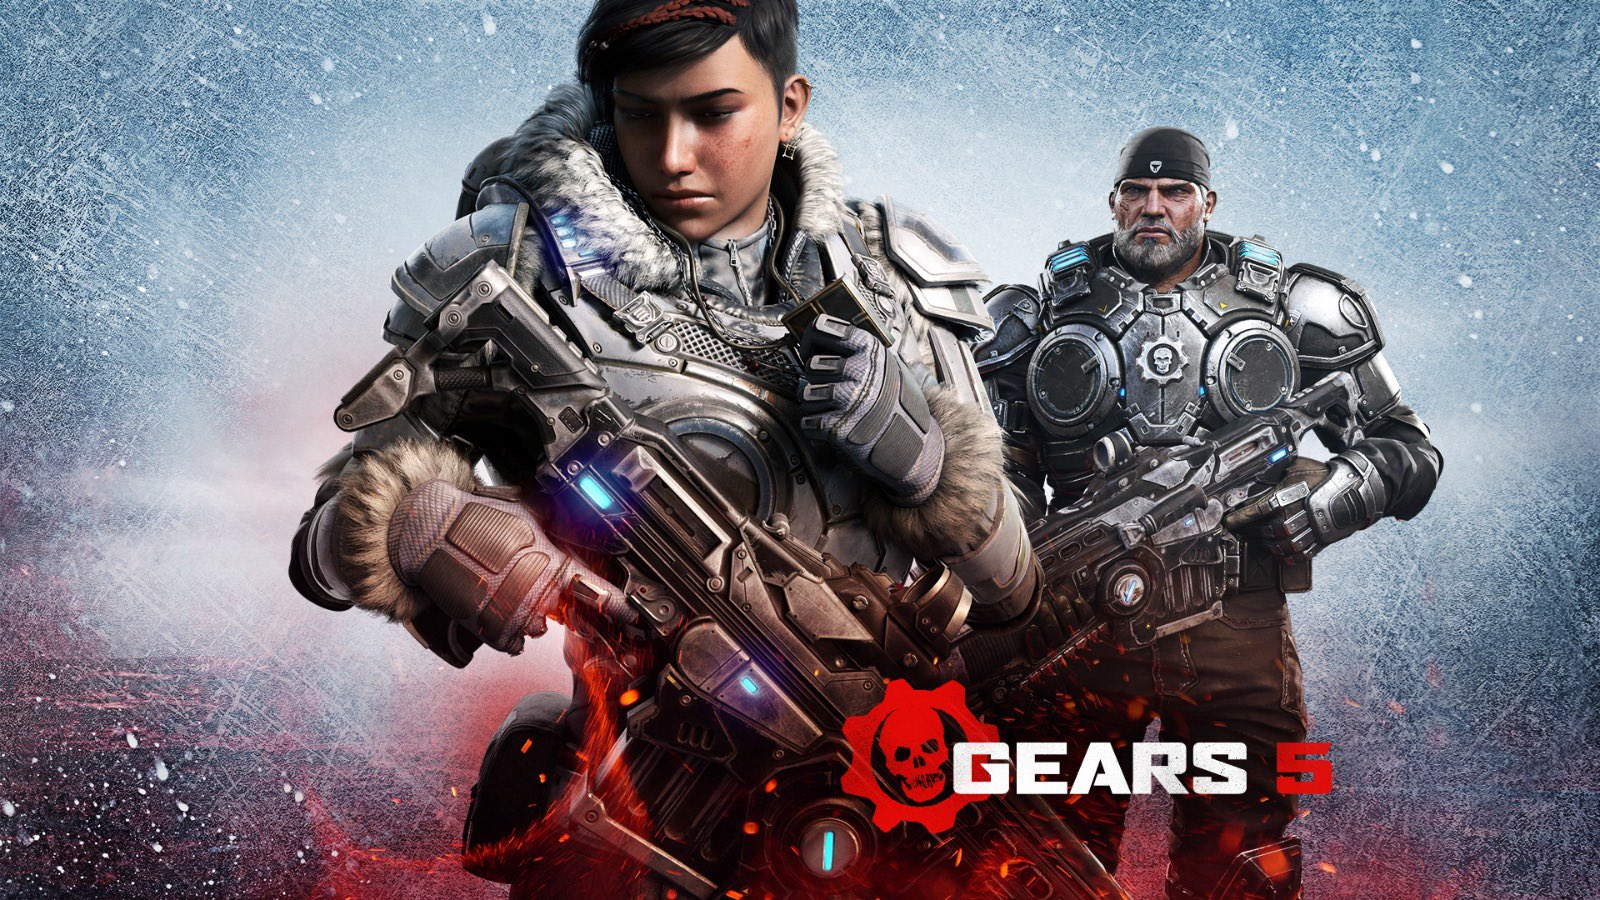 Coalition celebrates the first day of Gears 5